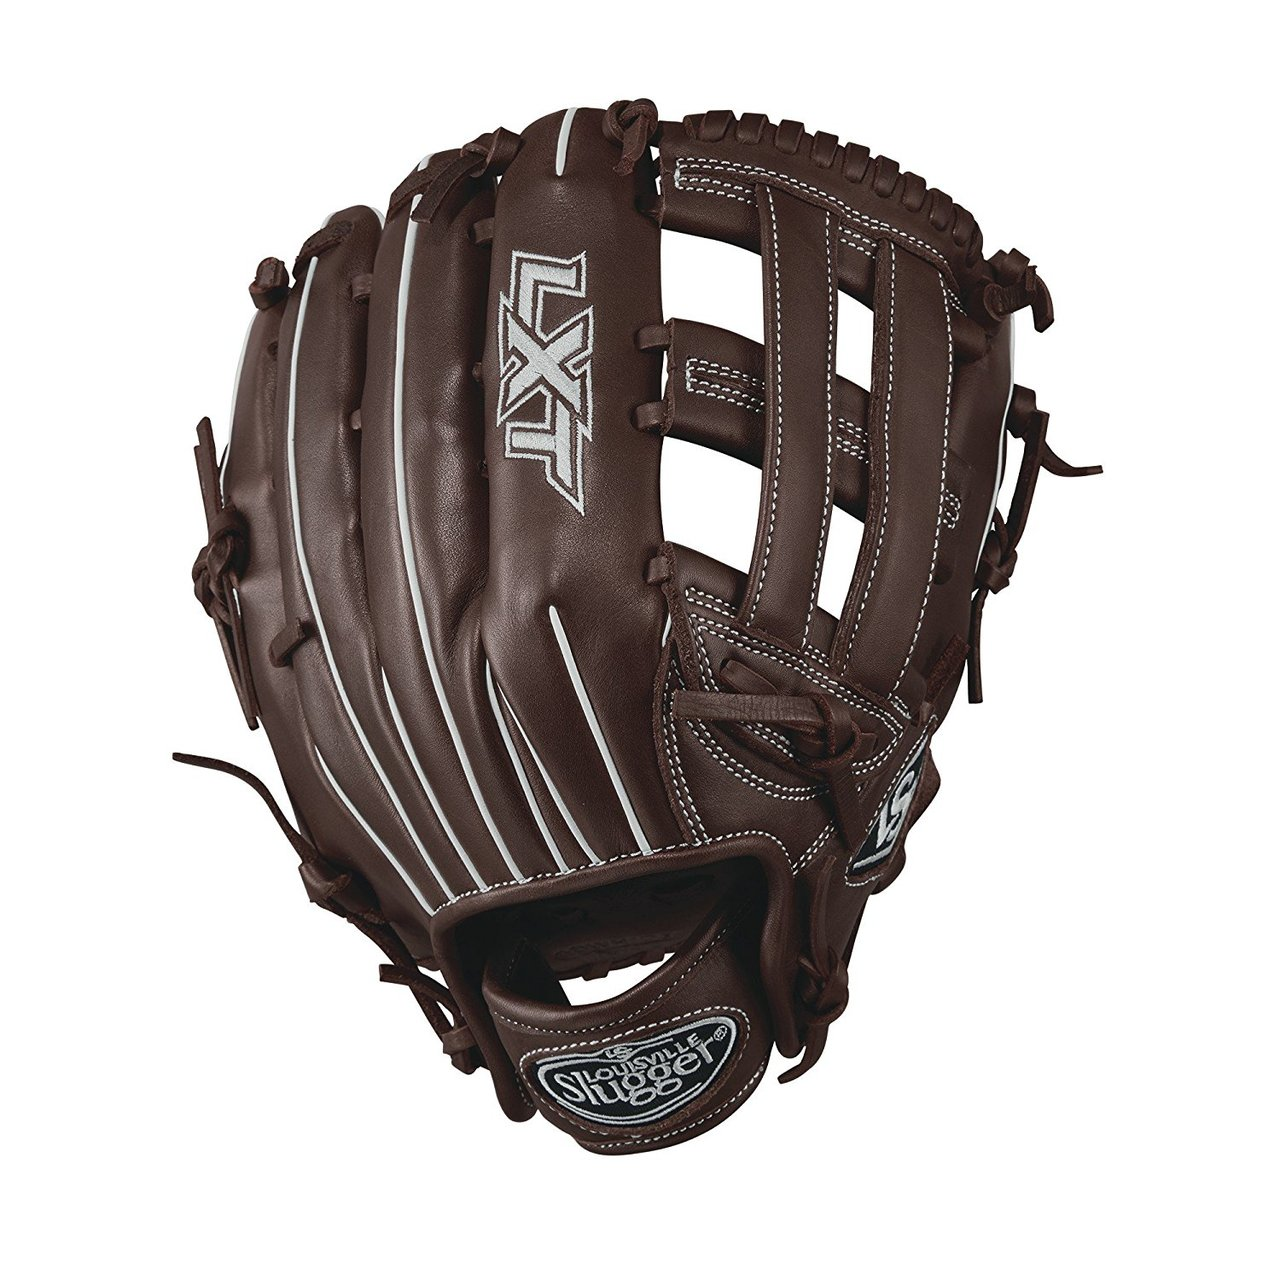 louisville-slugger-lxt-softball-glove-12-5-right-hand-throw WTLLXRF17125-RightHandThrow Louisville 887768498153 Used by the top players the LXT has established itself as